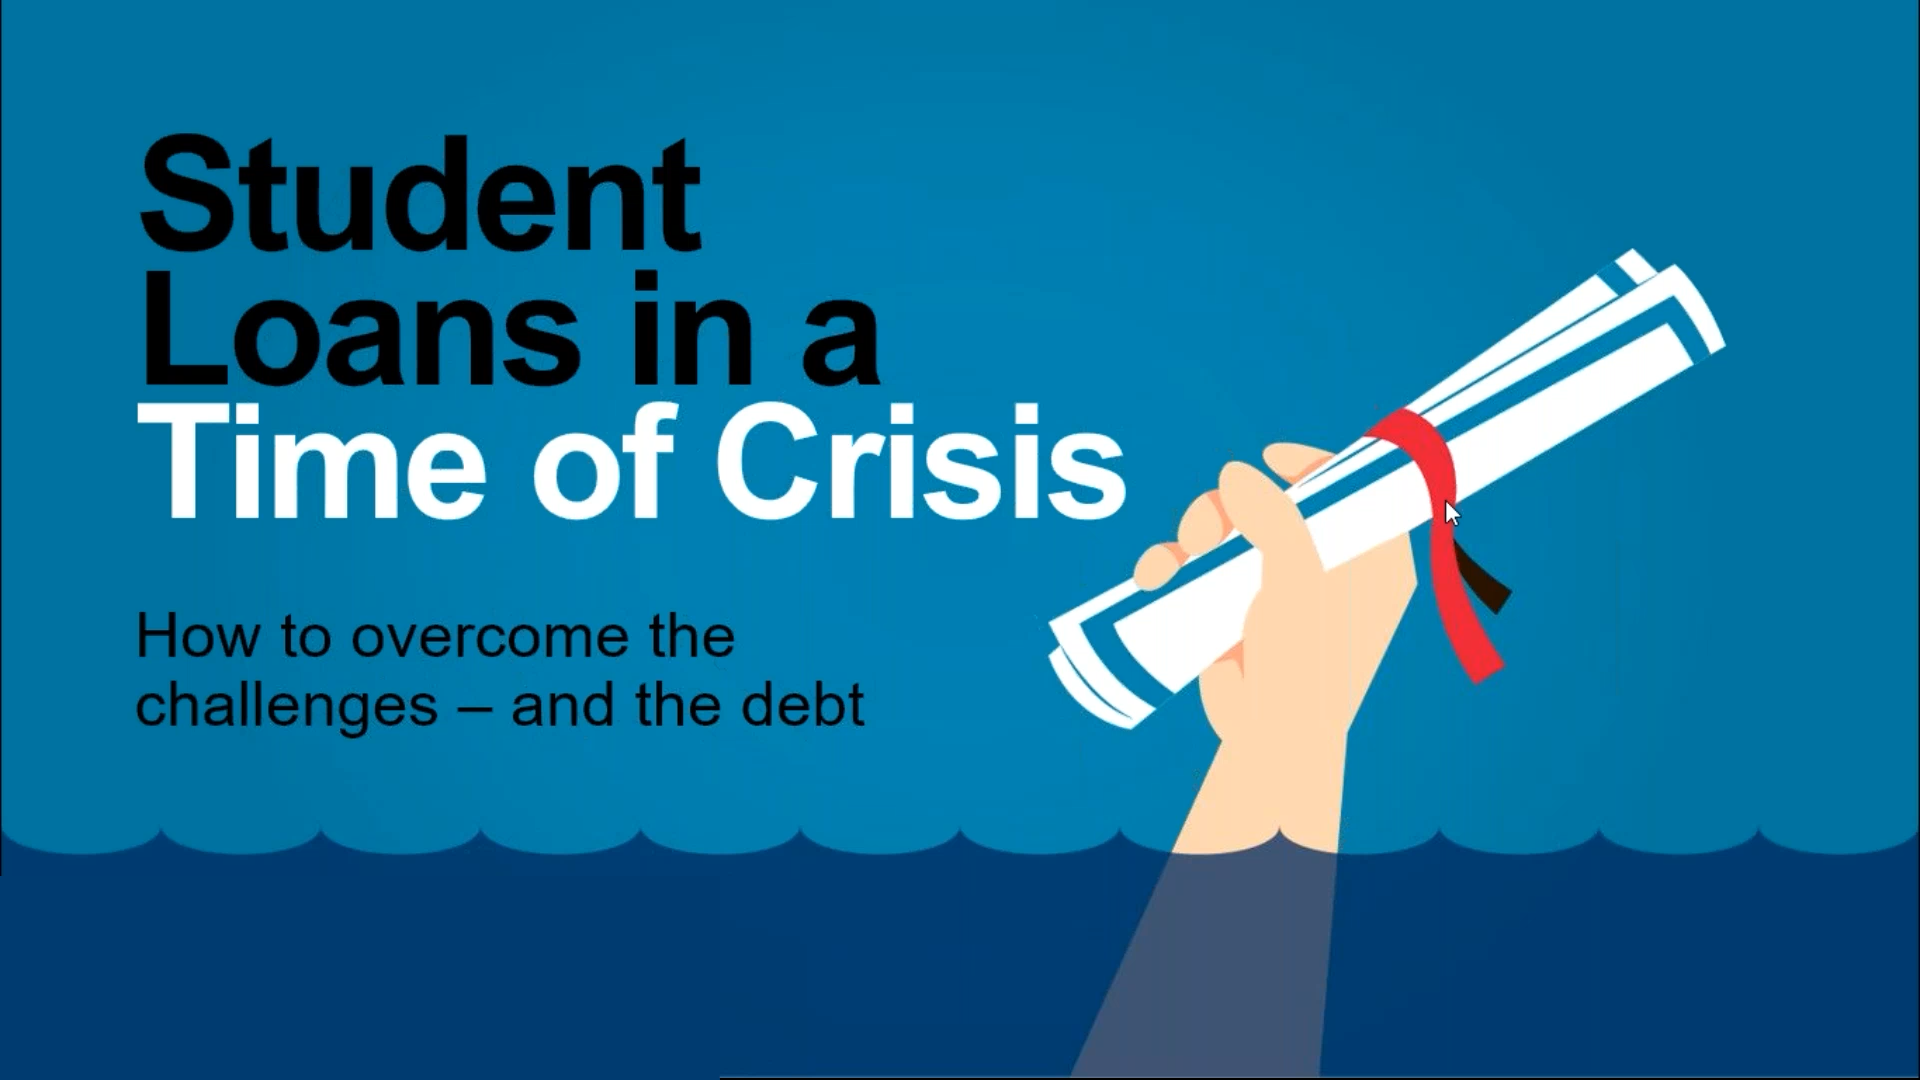 Student Loans in a Time of Crisis. How to overcome the challenges — and the debt